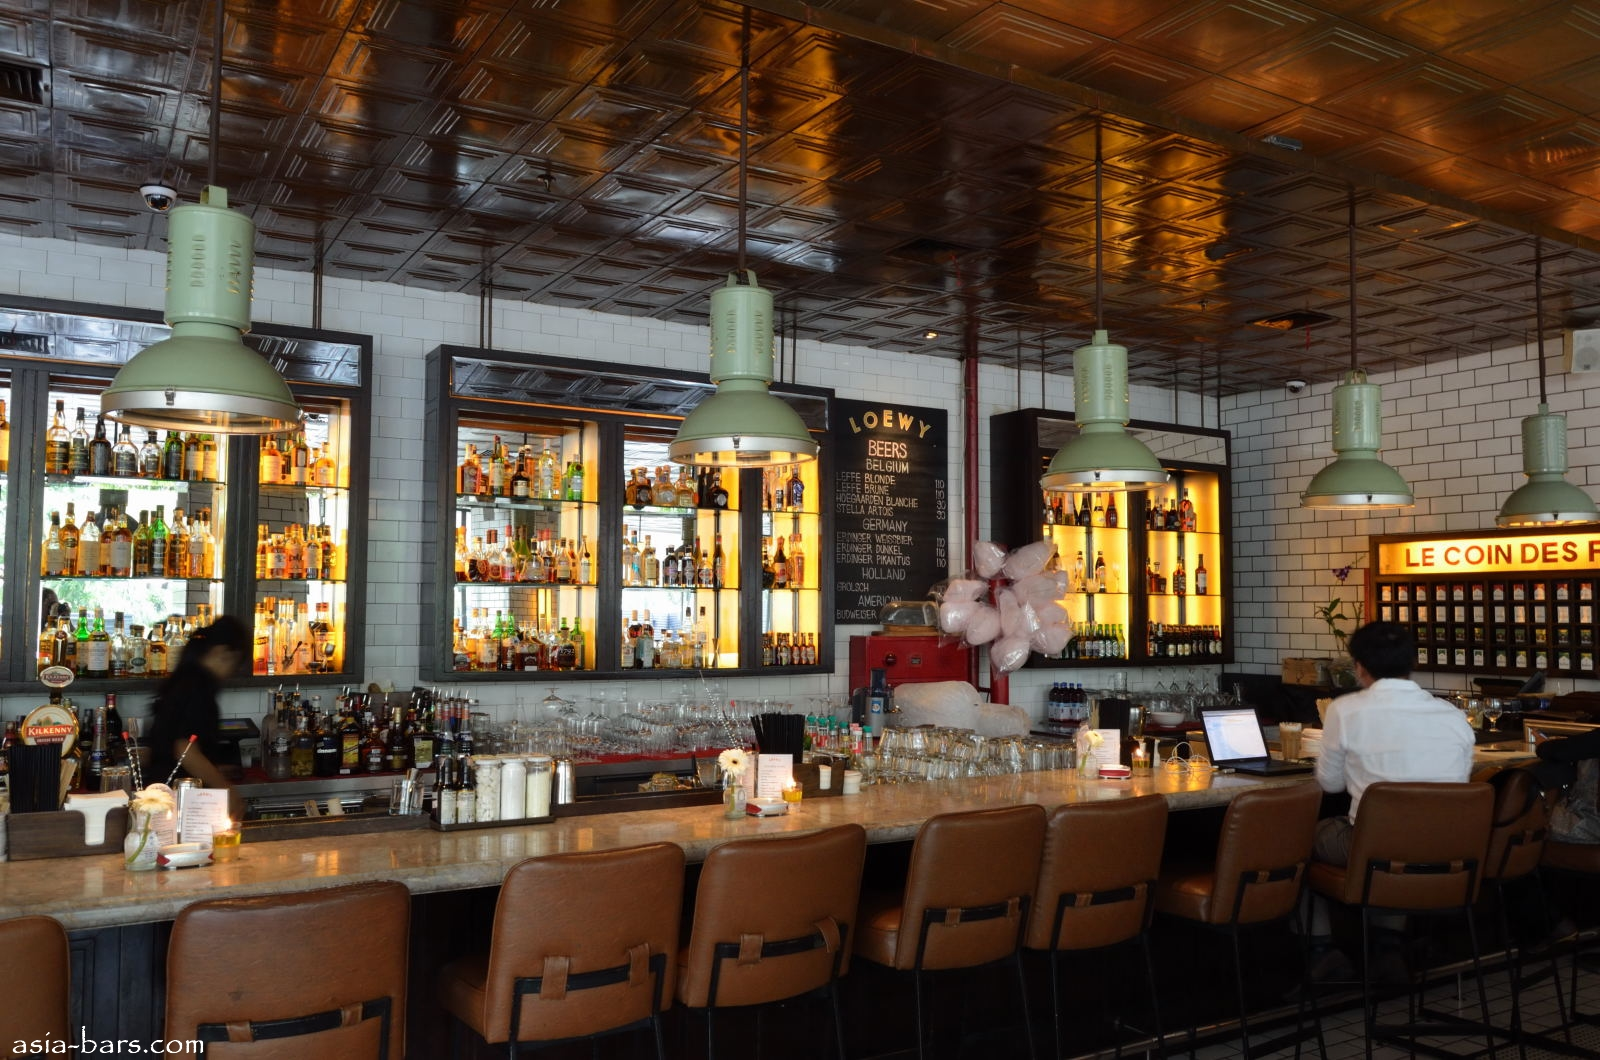 Loewy bar restaurant in jakarta excels with relaxed for Barra bar vintage